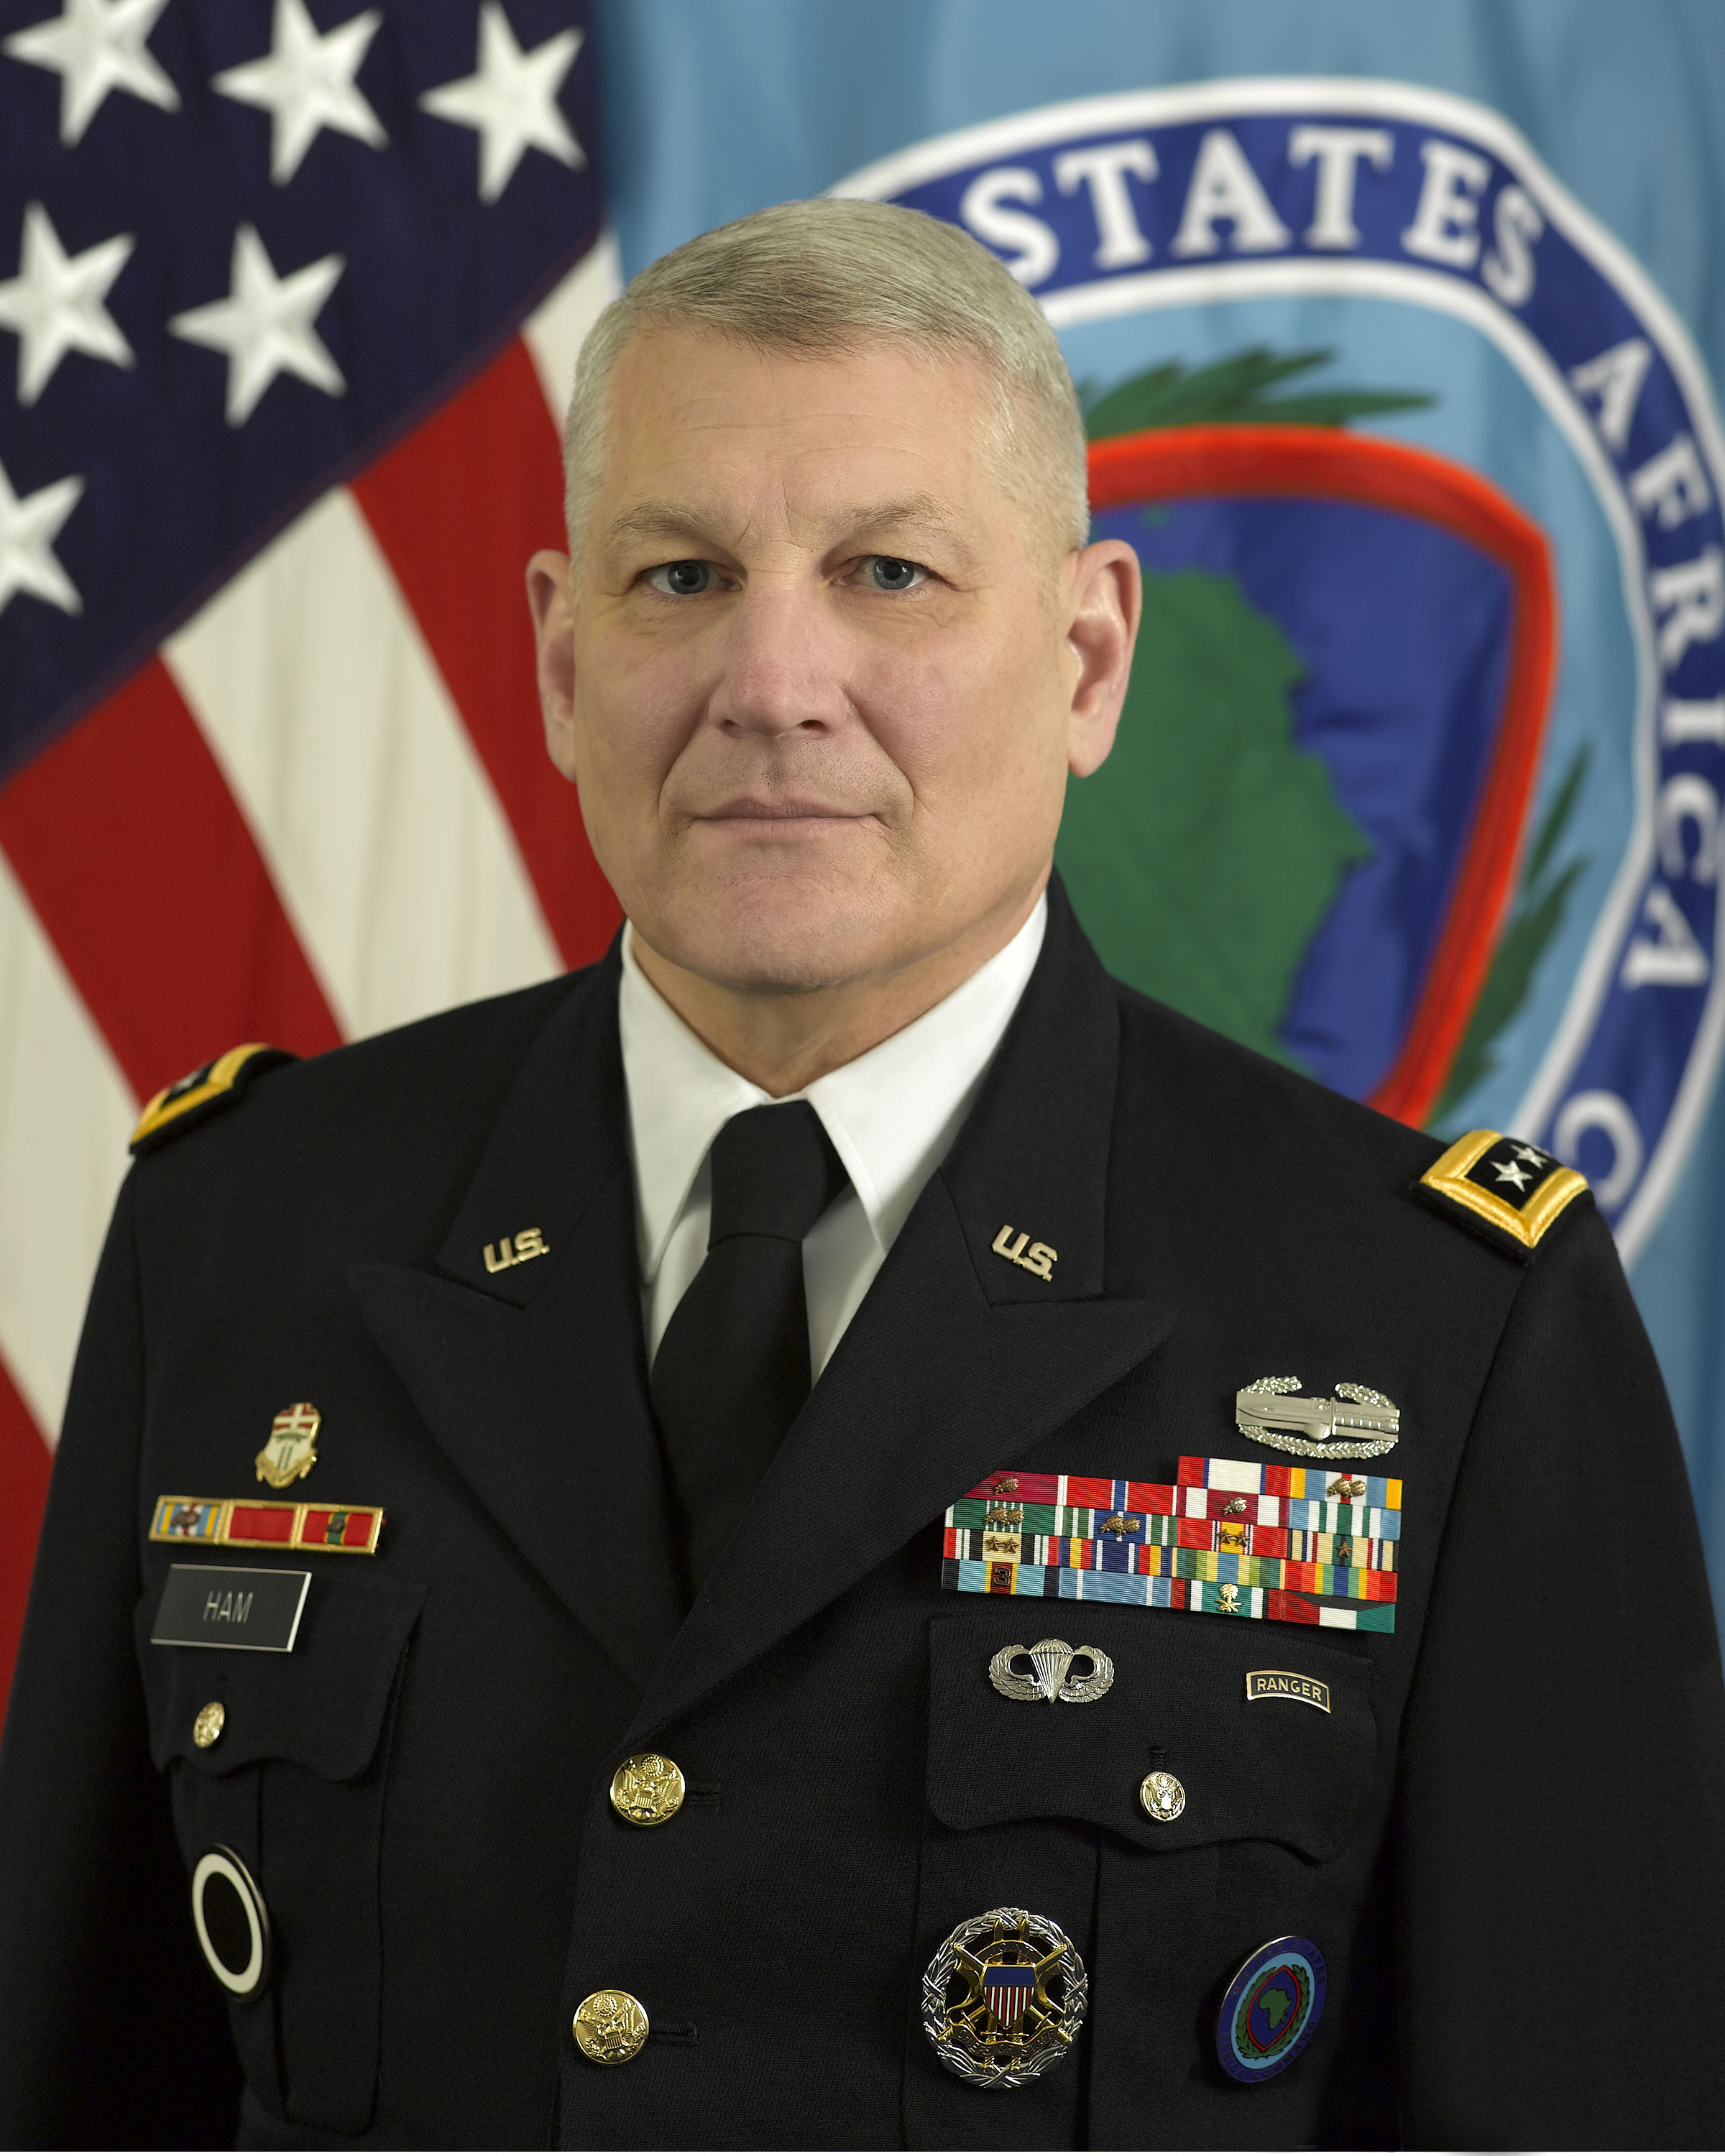 general in benghazi scandal suddenly retires